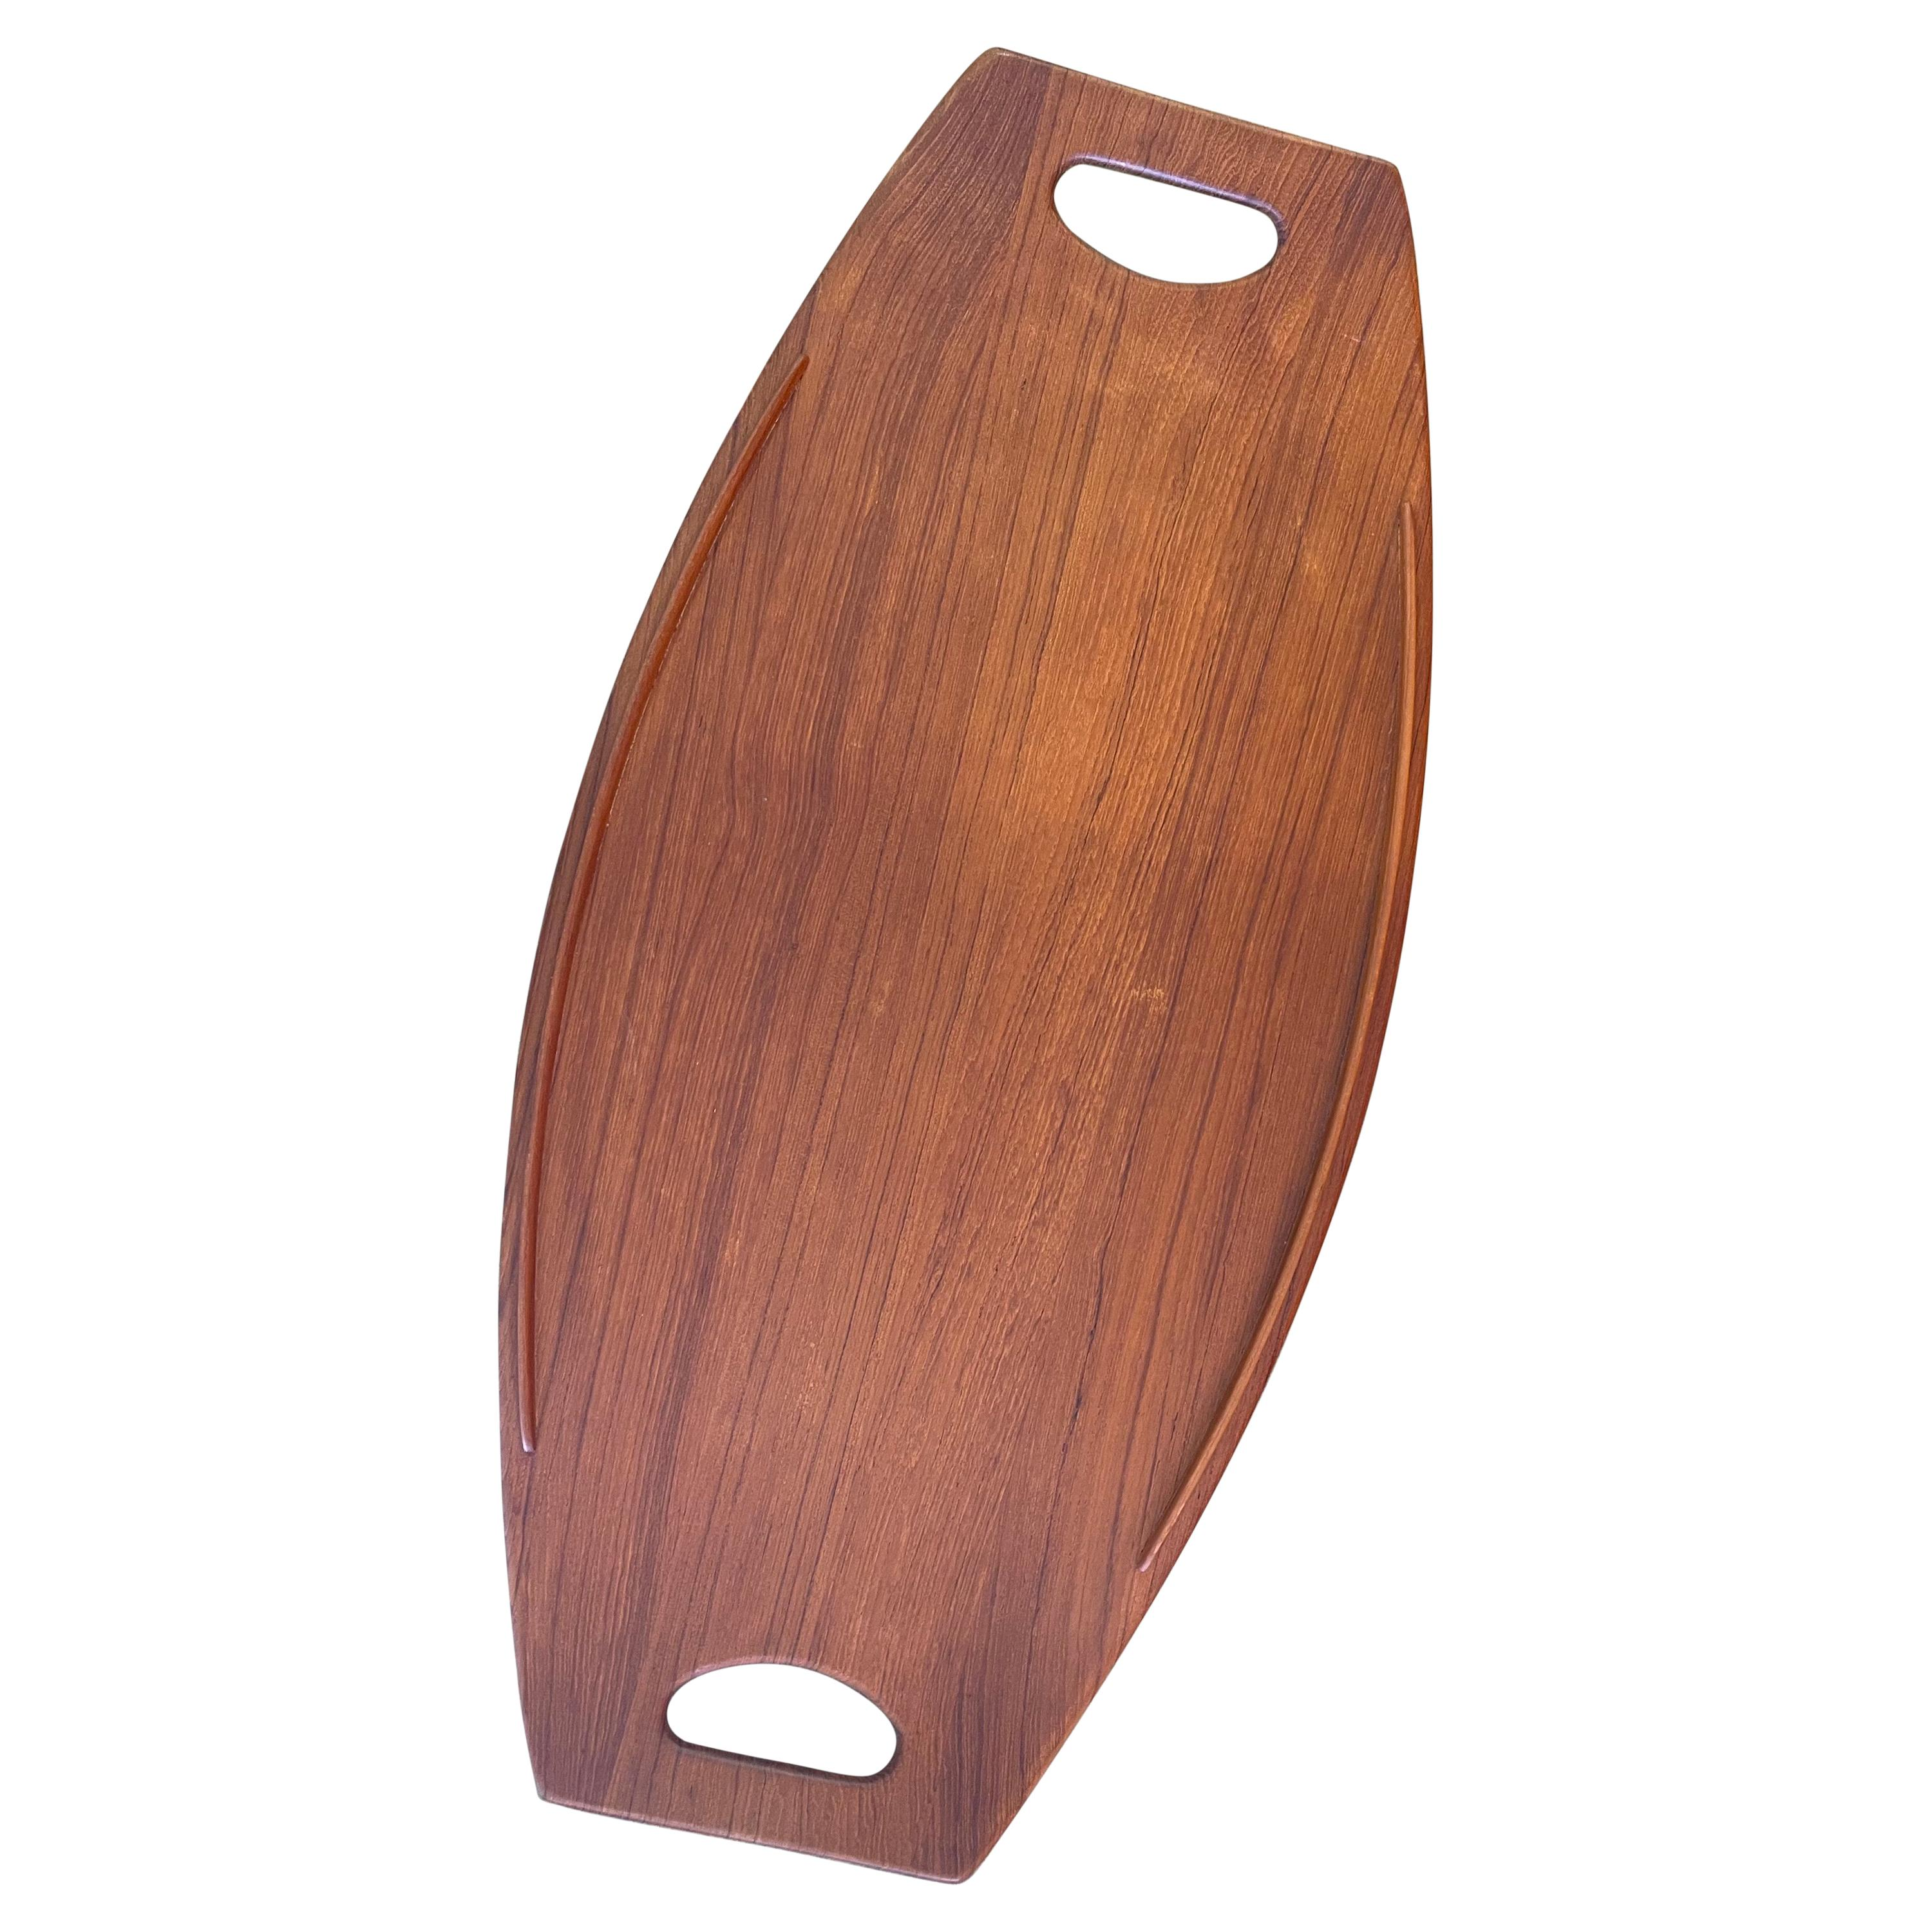 Large Teak Gondola Tray by Jens Quistgaard for Dansk, Early Production